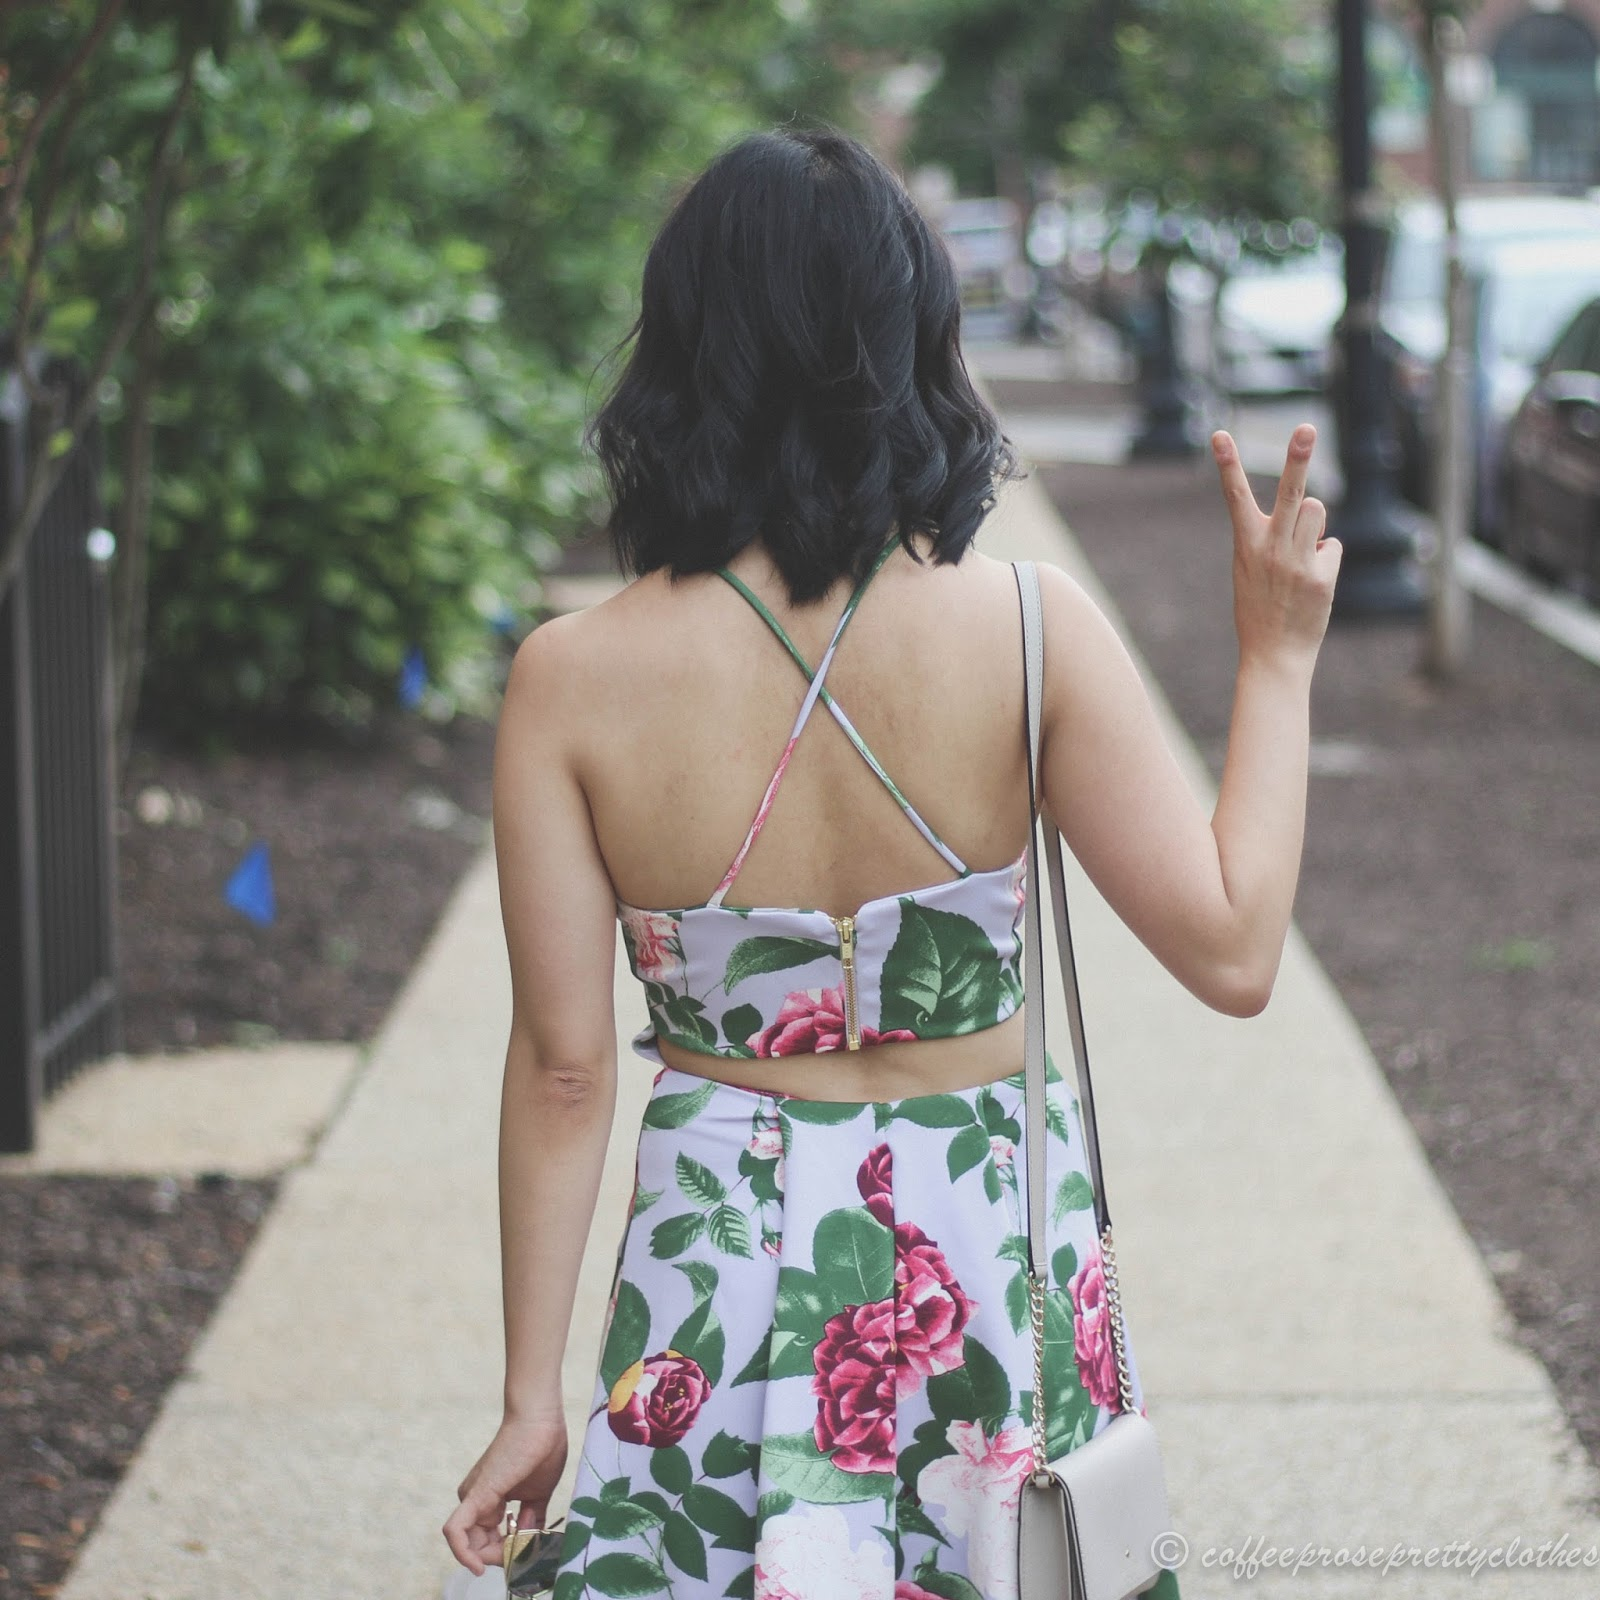 Scuba floral dress, backless dress, Lace up magenta heels, Zara heels, rose gold sunglasses